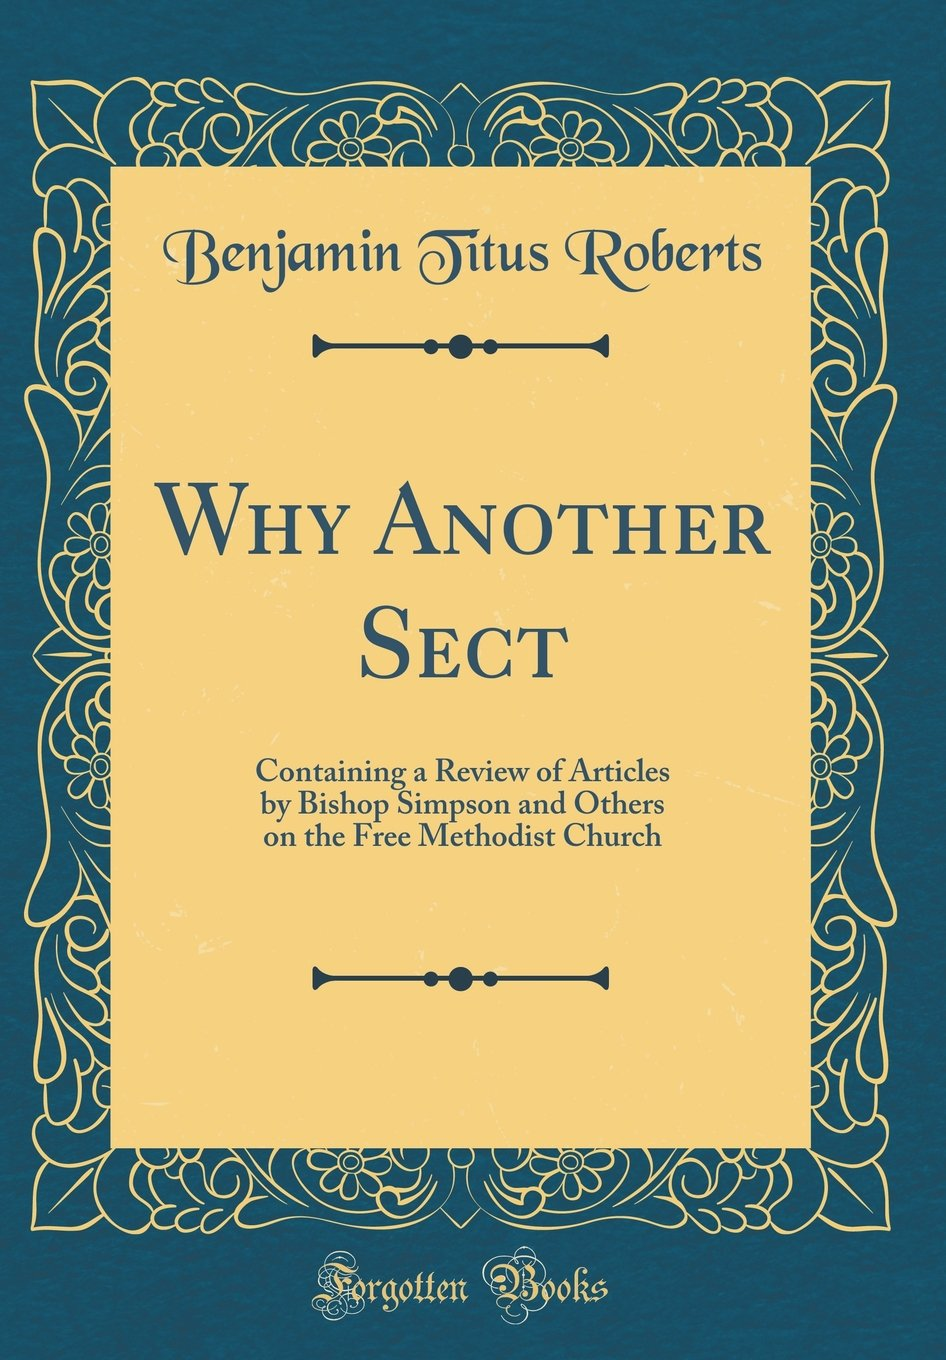 Download Why Another Sect: Containing a Review of Articles by Bishop Simpson and Others on the Free Methodist Church (Classic Reprint) PDF